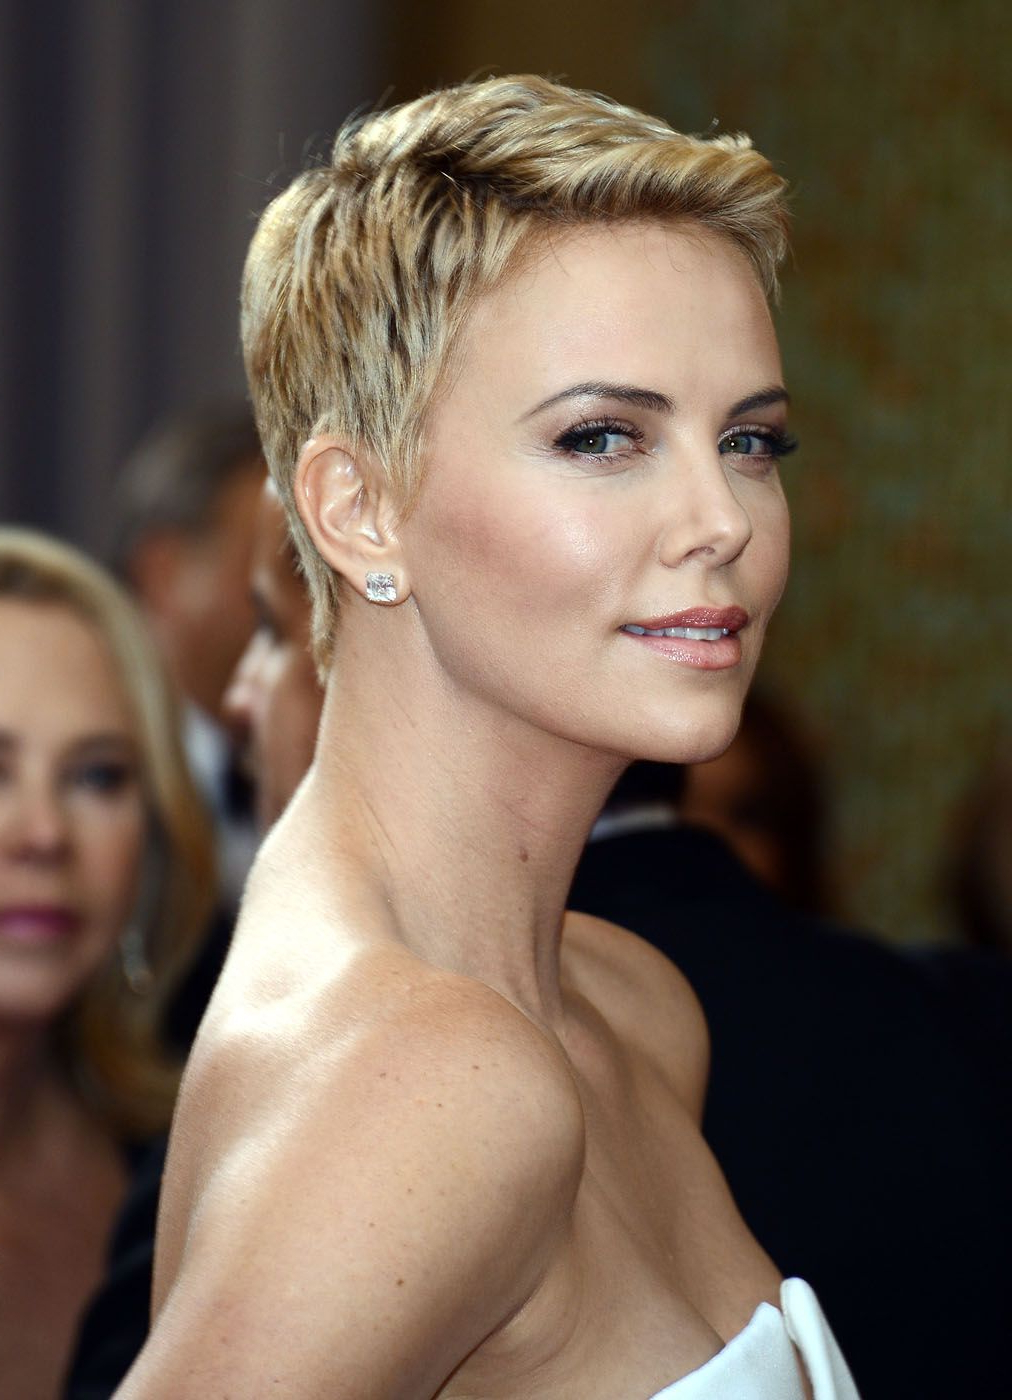 Charlize Theron Hair   Short Hair From Our Most Glamorous With Charlize Theron Short Haircuts (View 4 of 25)